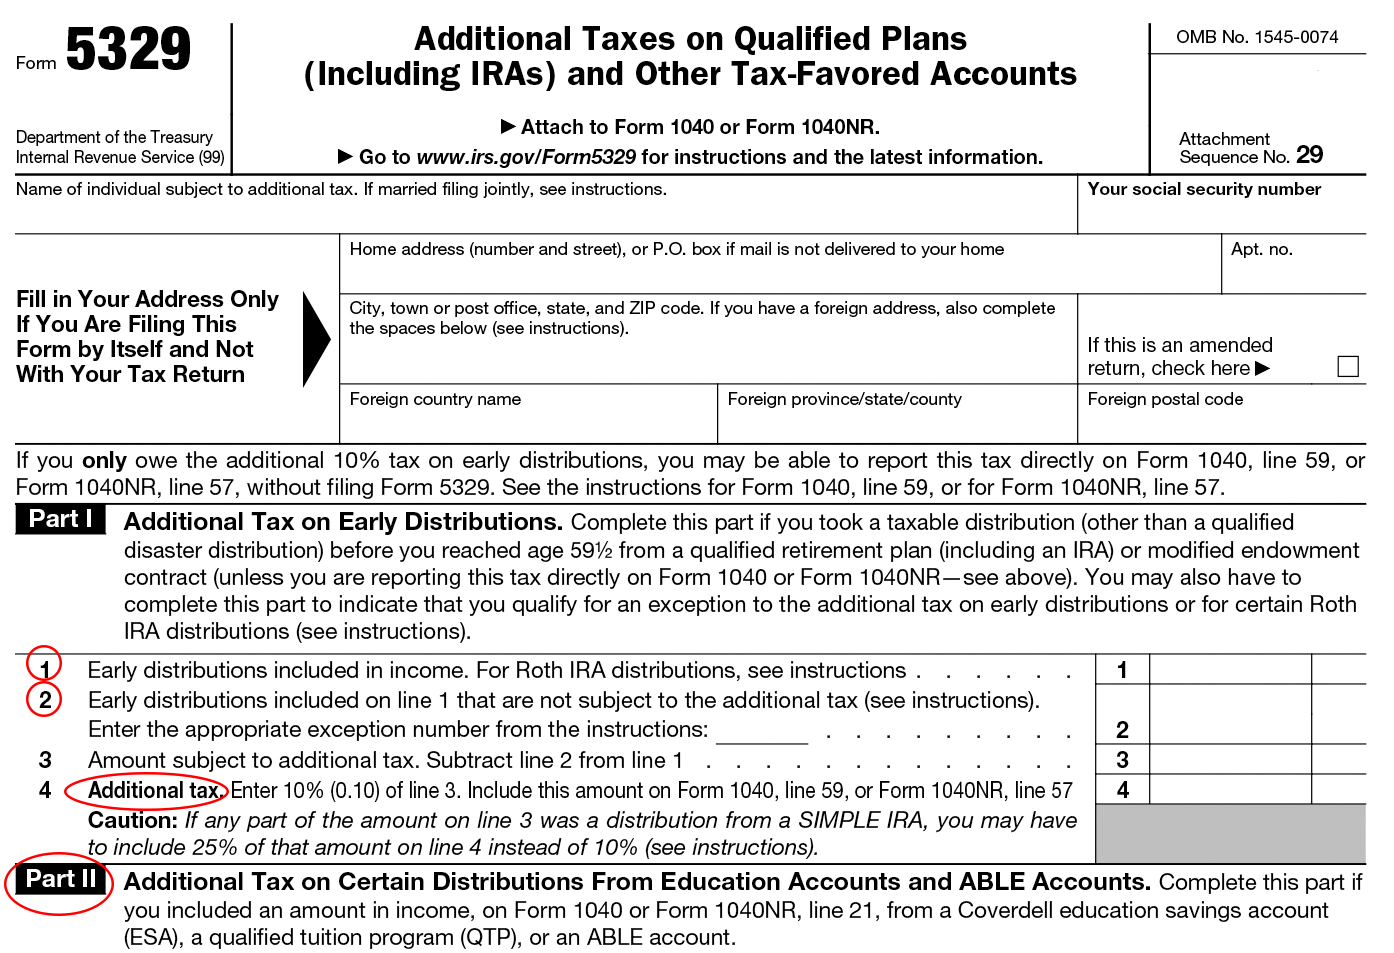 Form 5329: Instructions & Exception Information for IRS Form